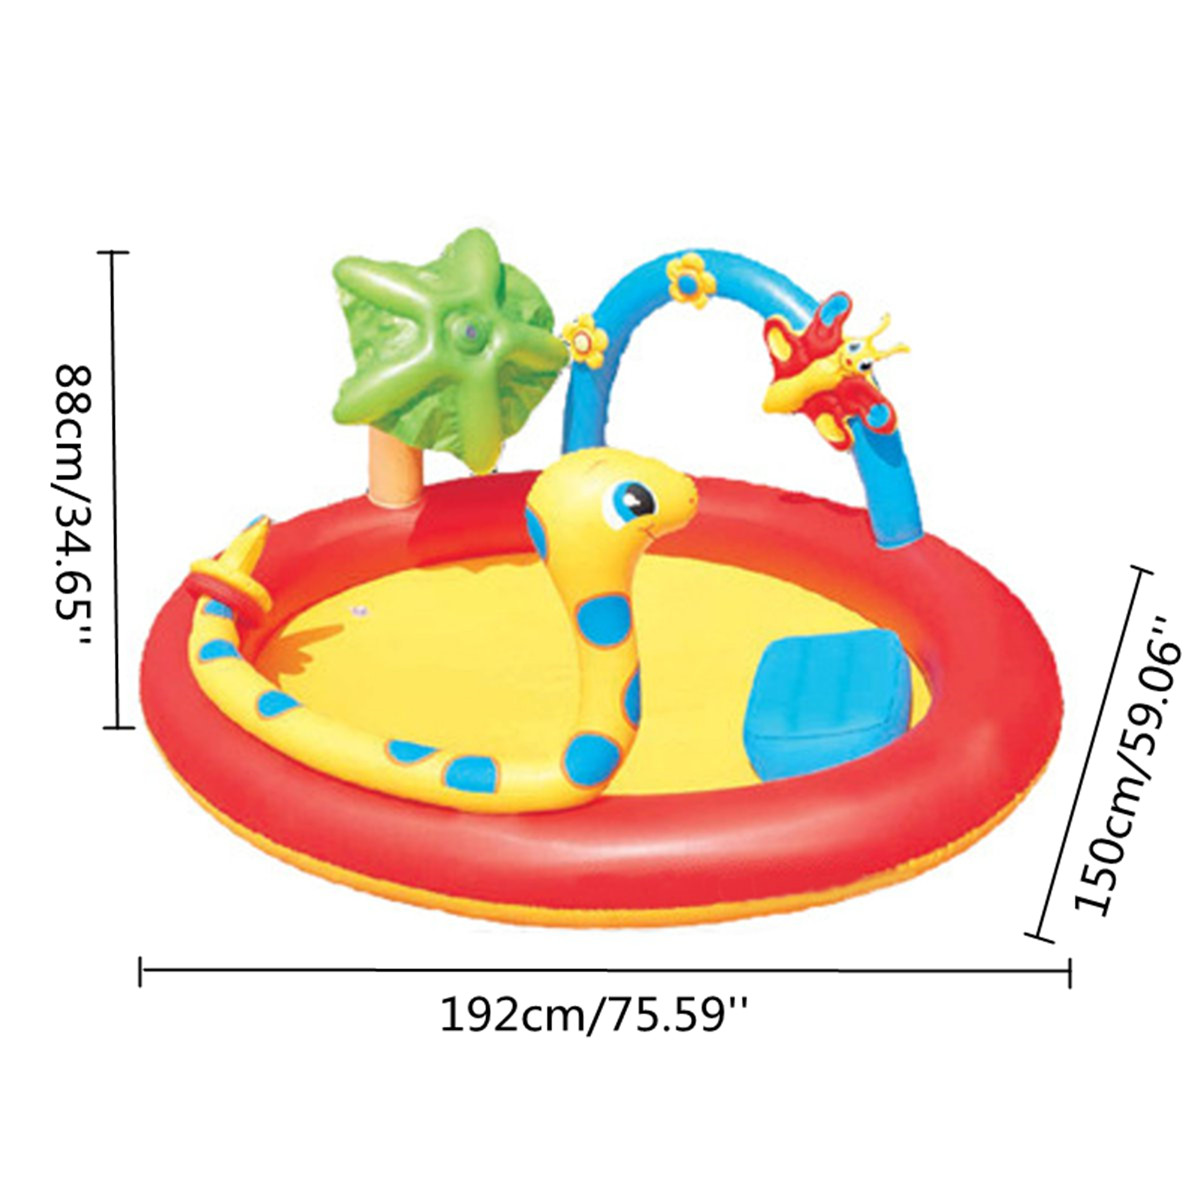 192x150x88cm PVC Inflatable Swimming Pool Children Kids Outdoor Safe Water Play